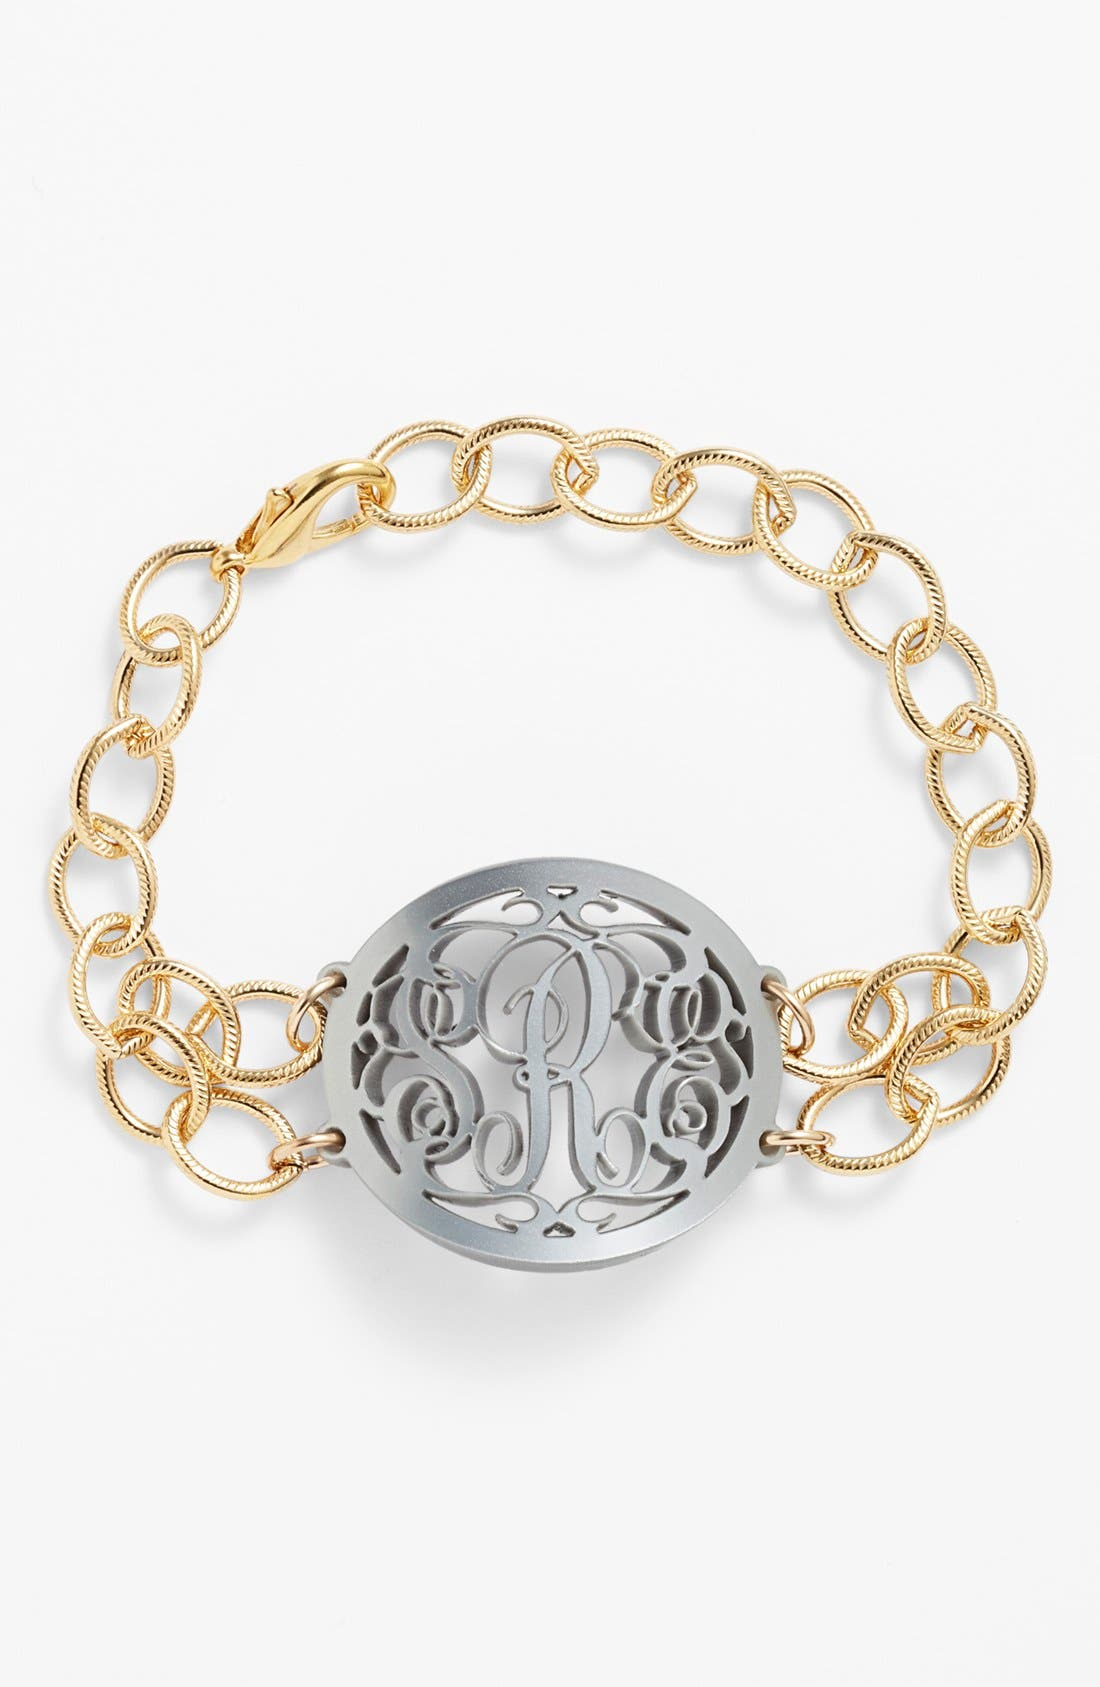 Main Image - Moon and Lola 'Annabel' Medium Oval Personalized Monogram Bracelet (Nordstrom Exclusive)